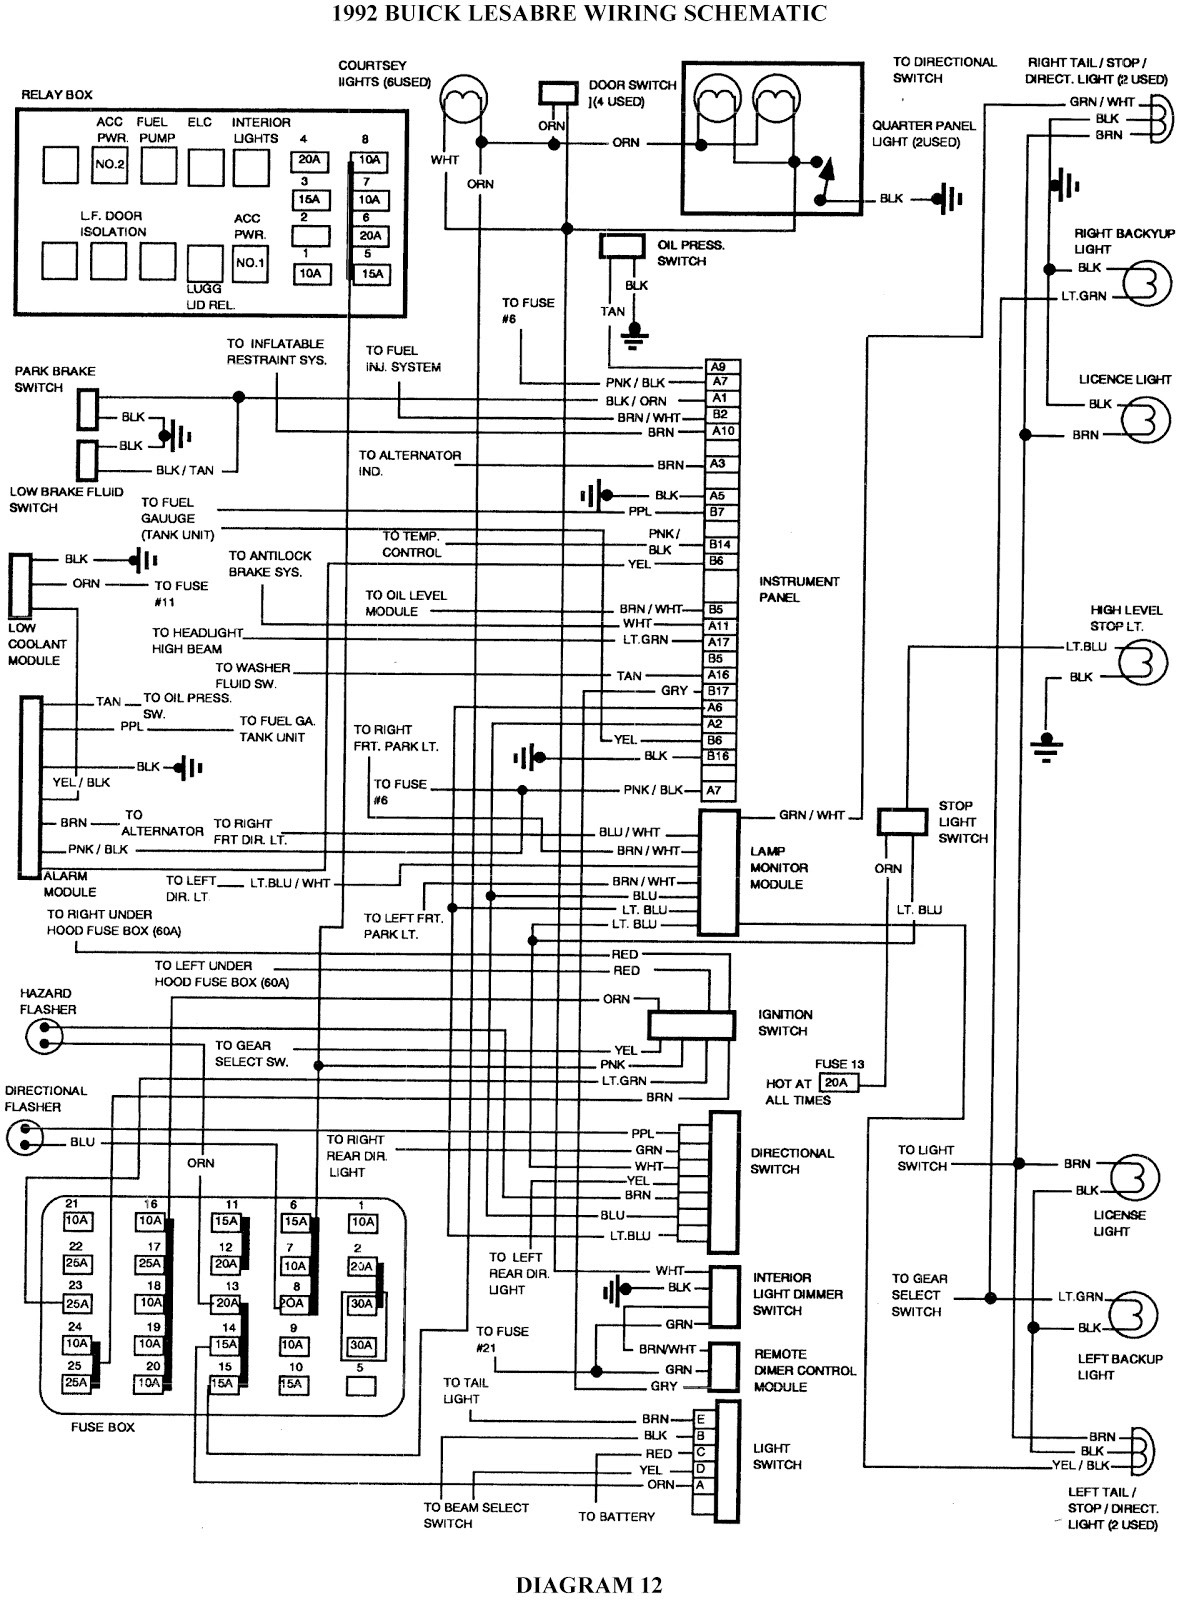 1992 Buick LeSabre Schematic Wiring Diagrams | Schematic